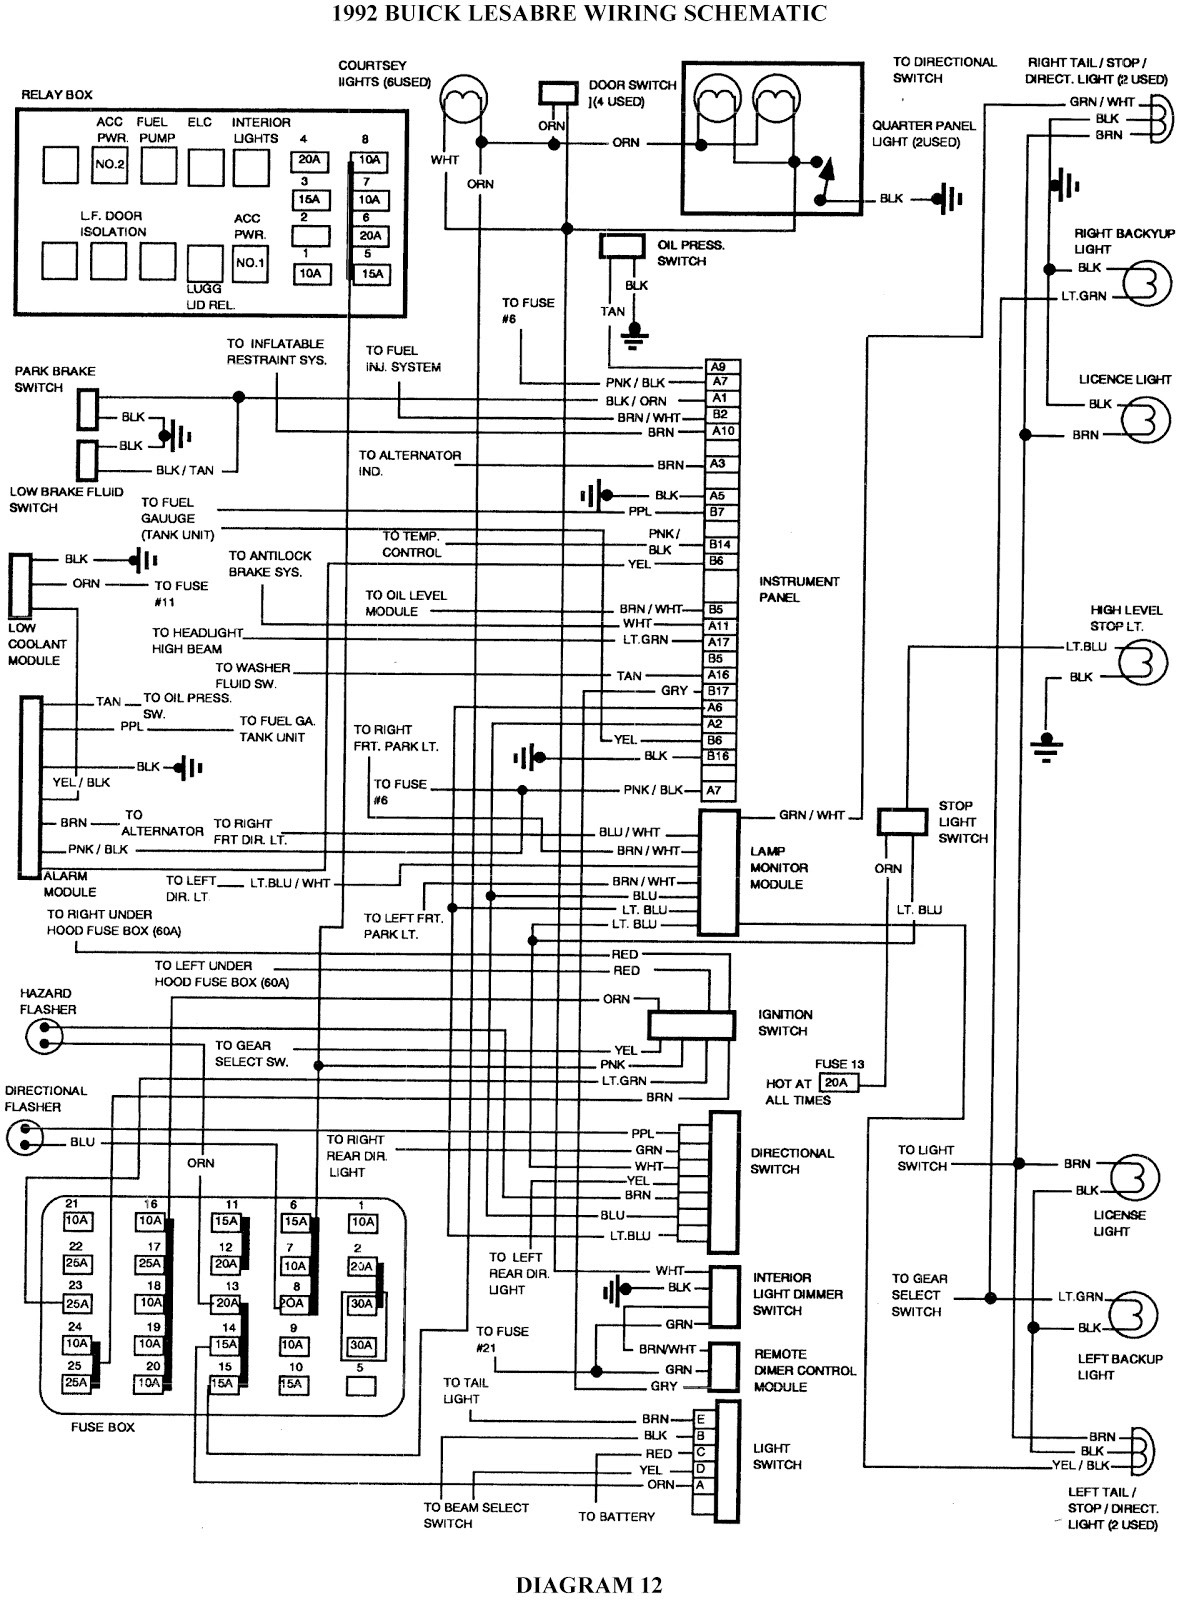 1992 Buick LeSabre Schematic Wiring Diagrams | Schematic